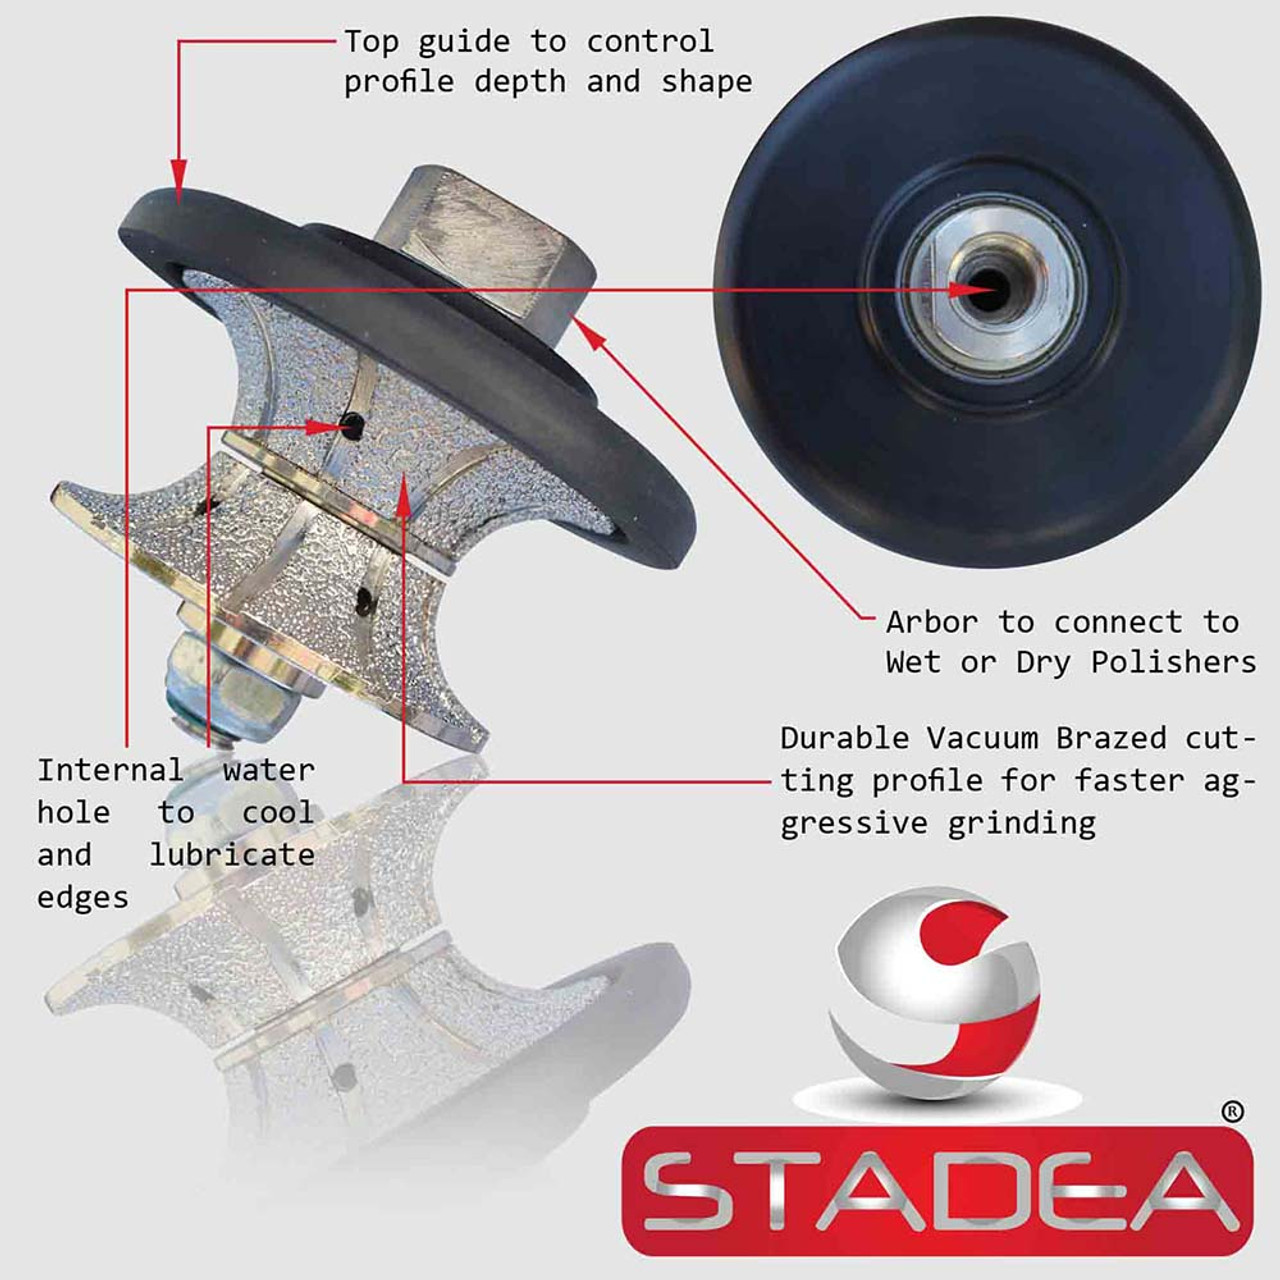 Stadea Diamond Hand Profiler Wheel Full Bullnose Granite Countertop Edge Profile V30 1 1 4